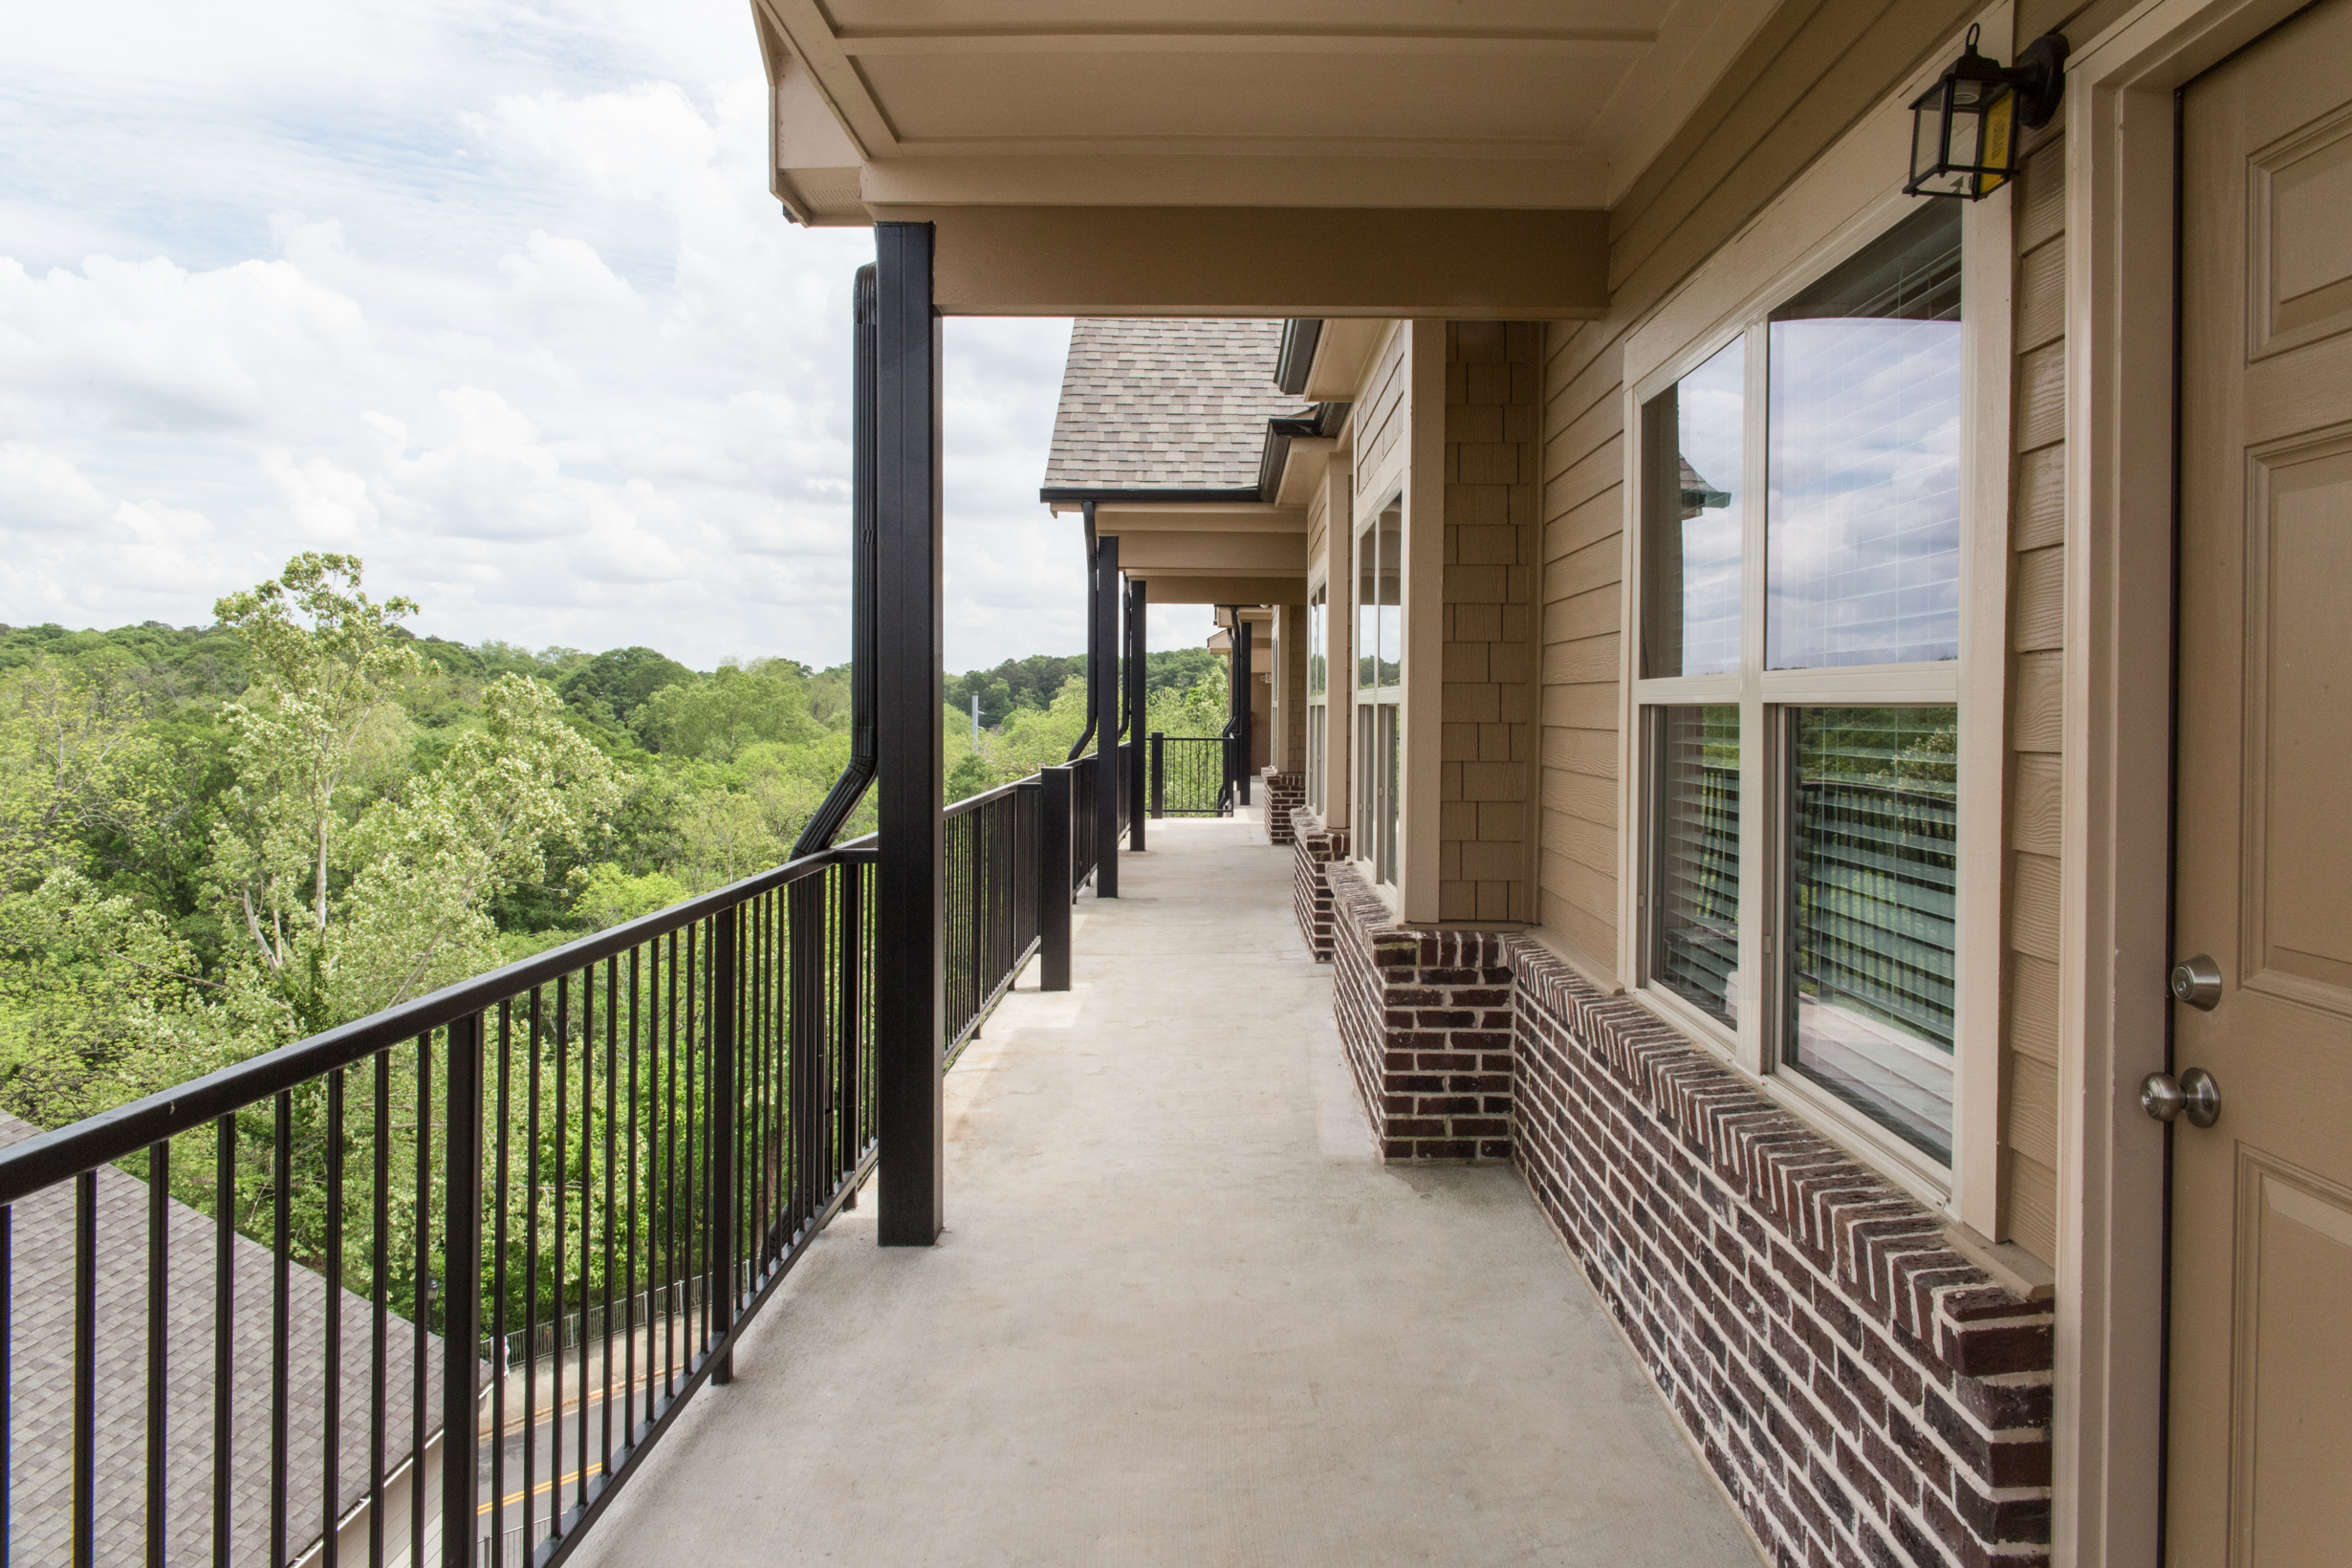 Whistlebury-Walk-Rent-Athens-5